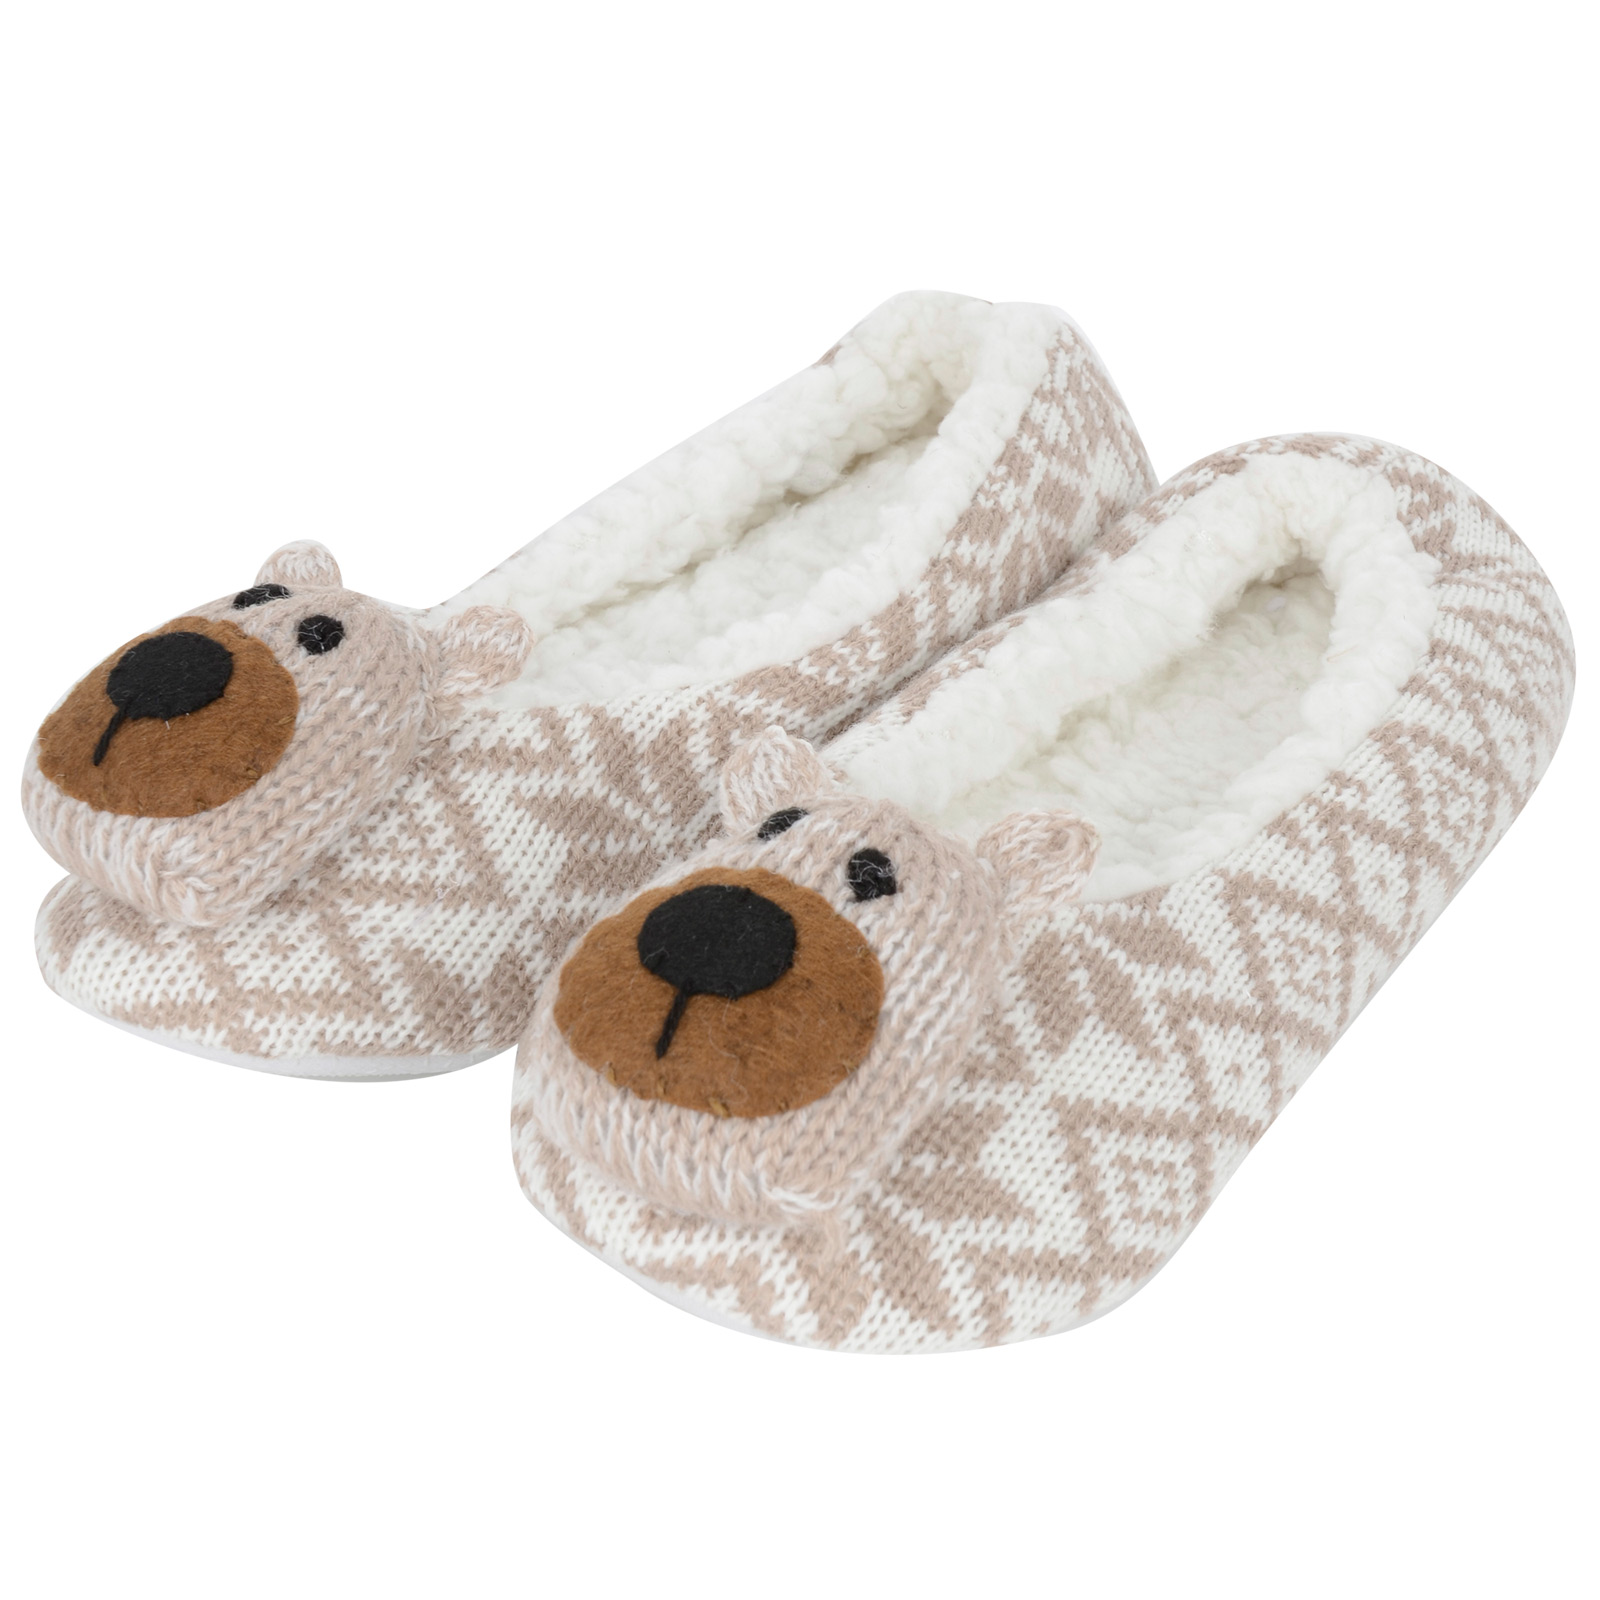 Ladies-Cosy-Knitted-Fair-Isle-Full-Slippers-With-Cute-3D-Bear-Face-On-The-Toe